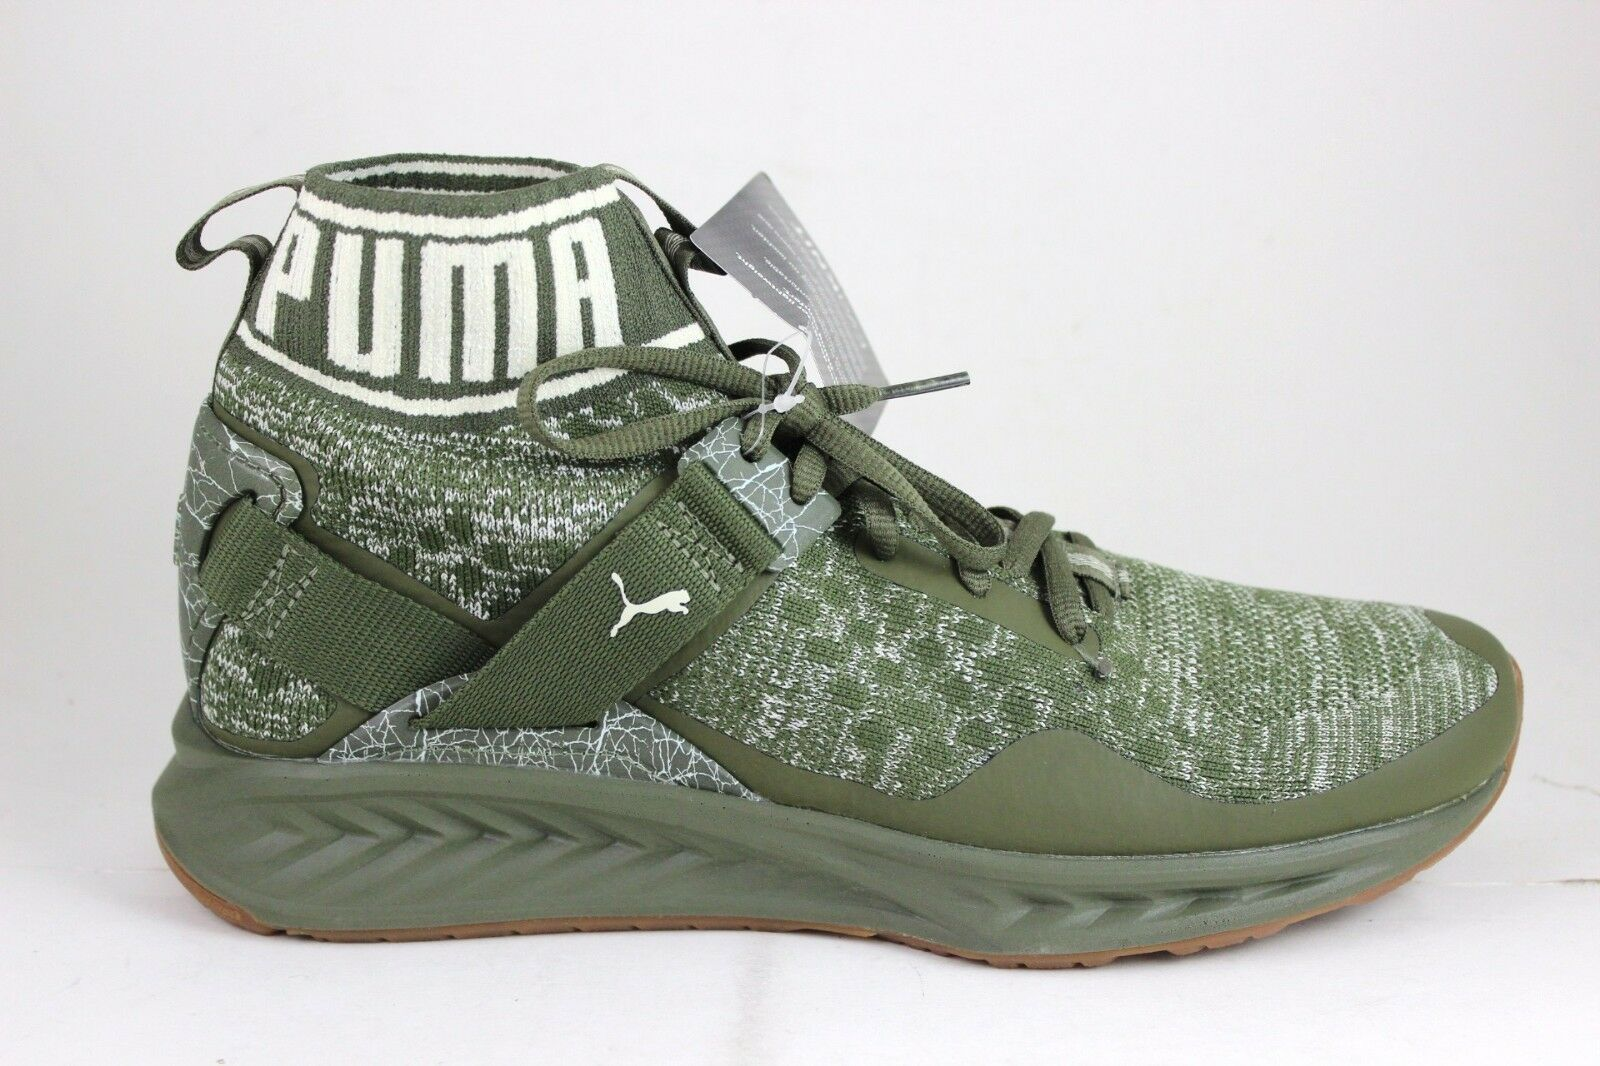 Men's Puma Ignite evoKNIT Hypernature Olive Birch 190337 01 Brand New In Box